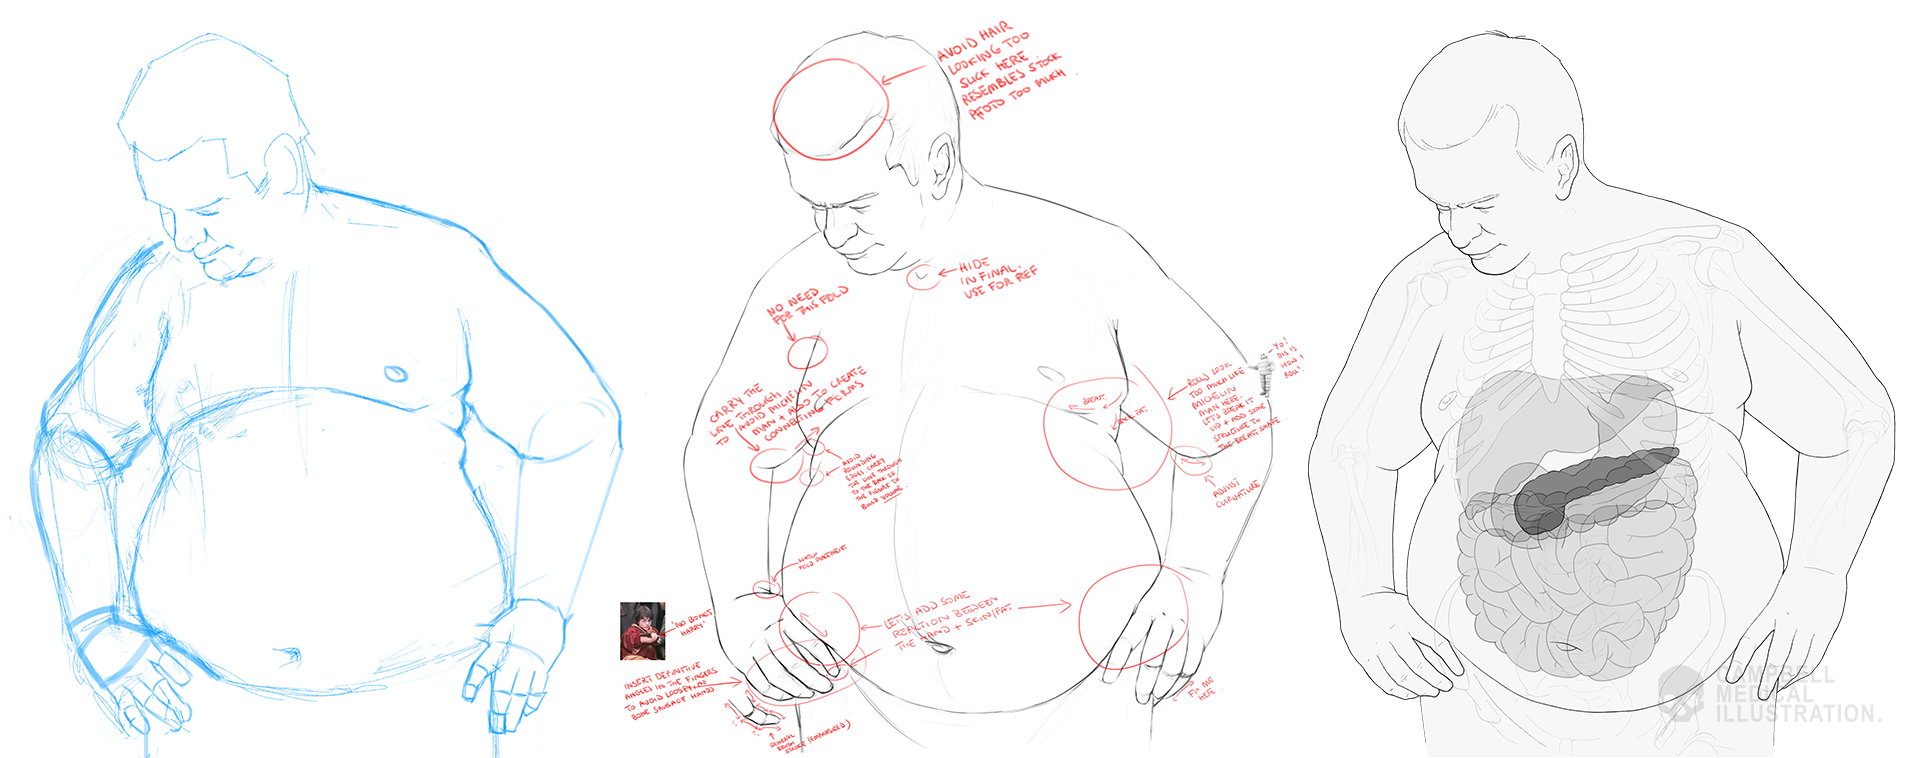 Susanna-Brighouse-obese-male-medical-illustration-work-in-progress.png